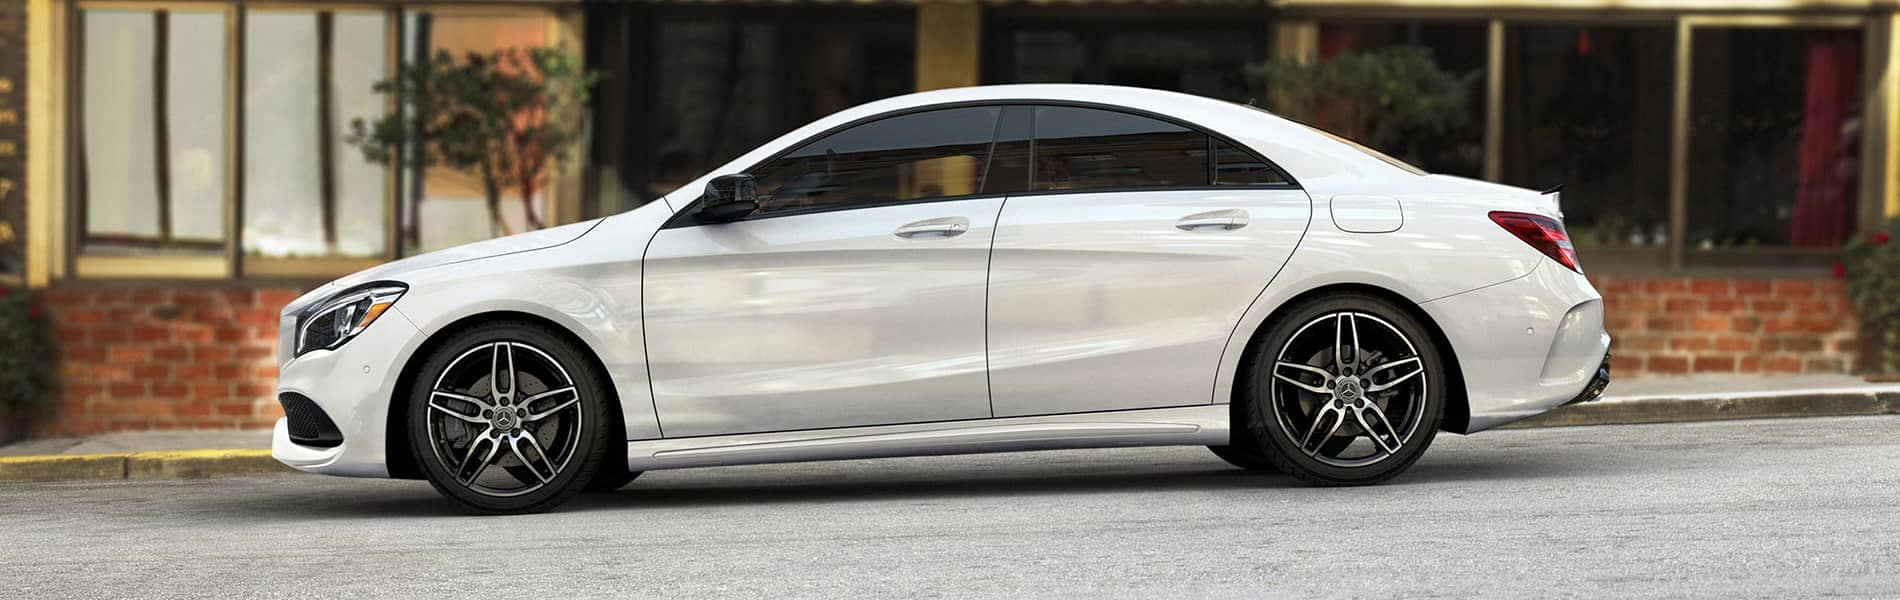 2019 MB CLA Side View